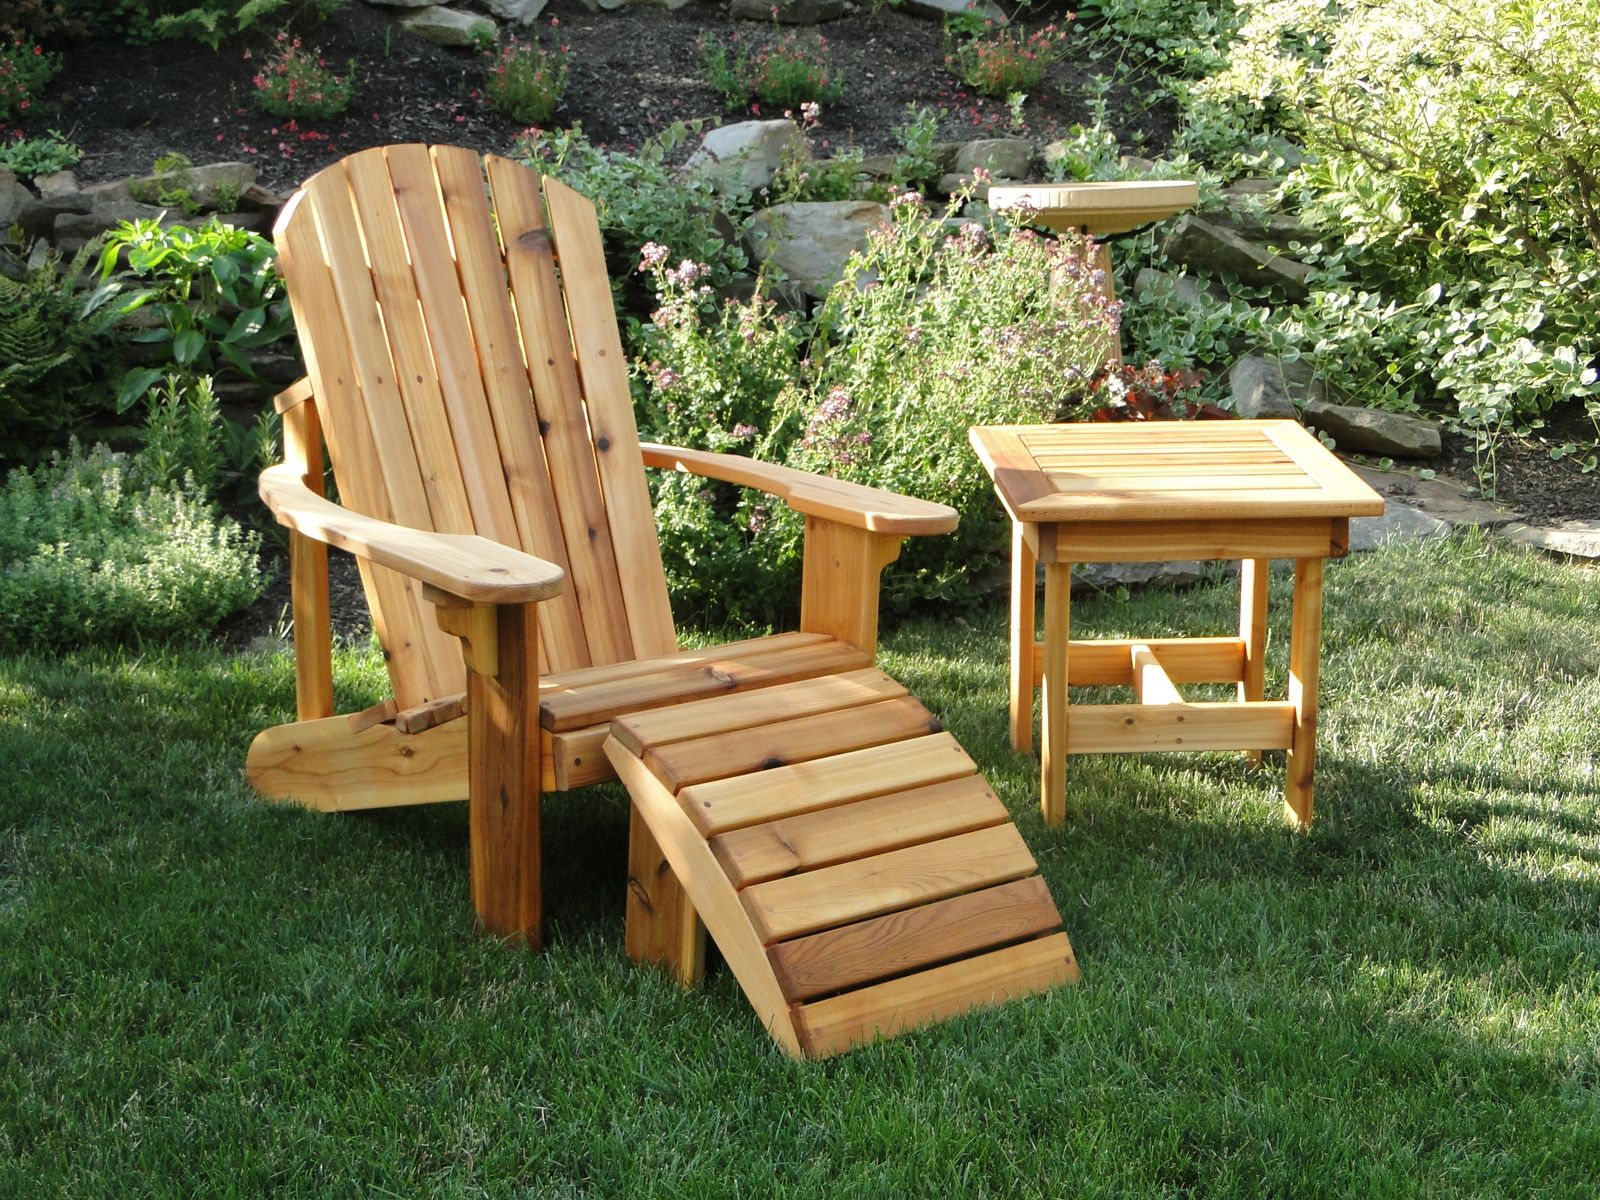 hand crafted adirondack chair with leg rest and side table by teaky